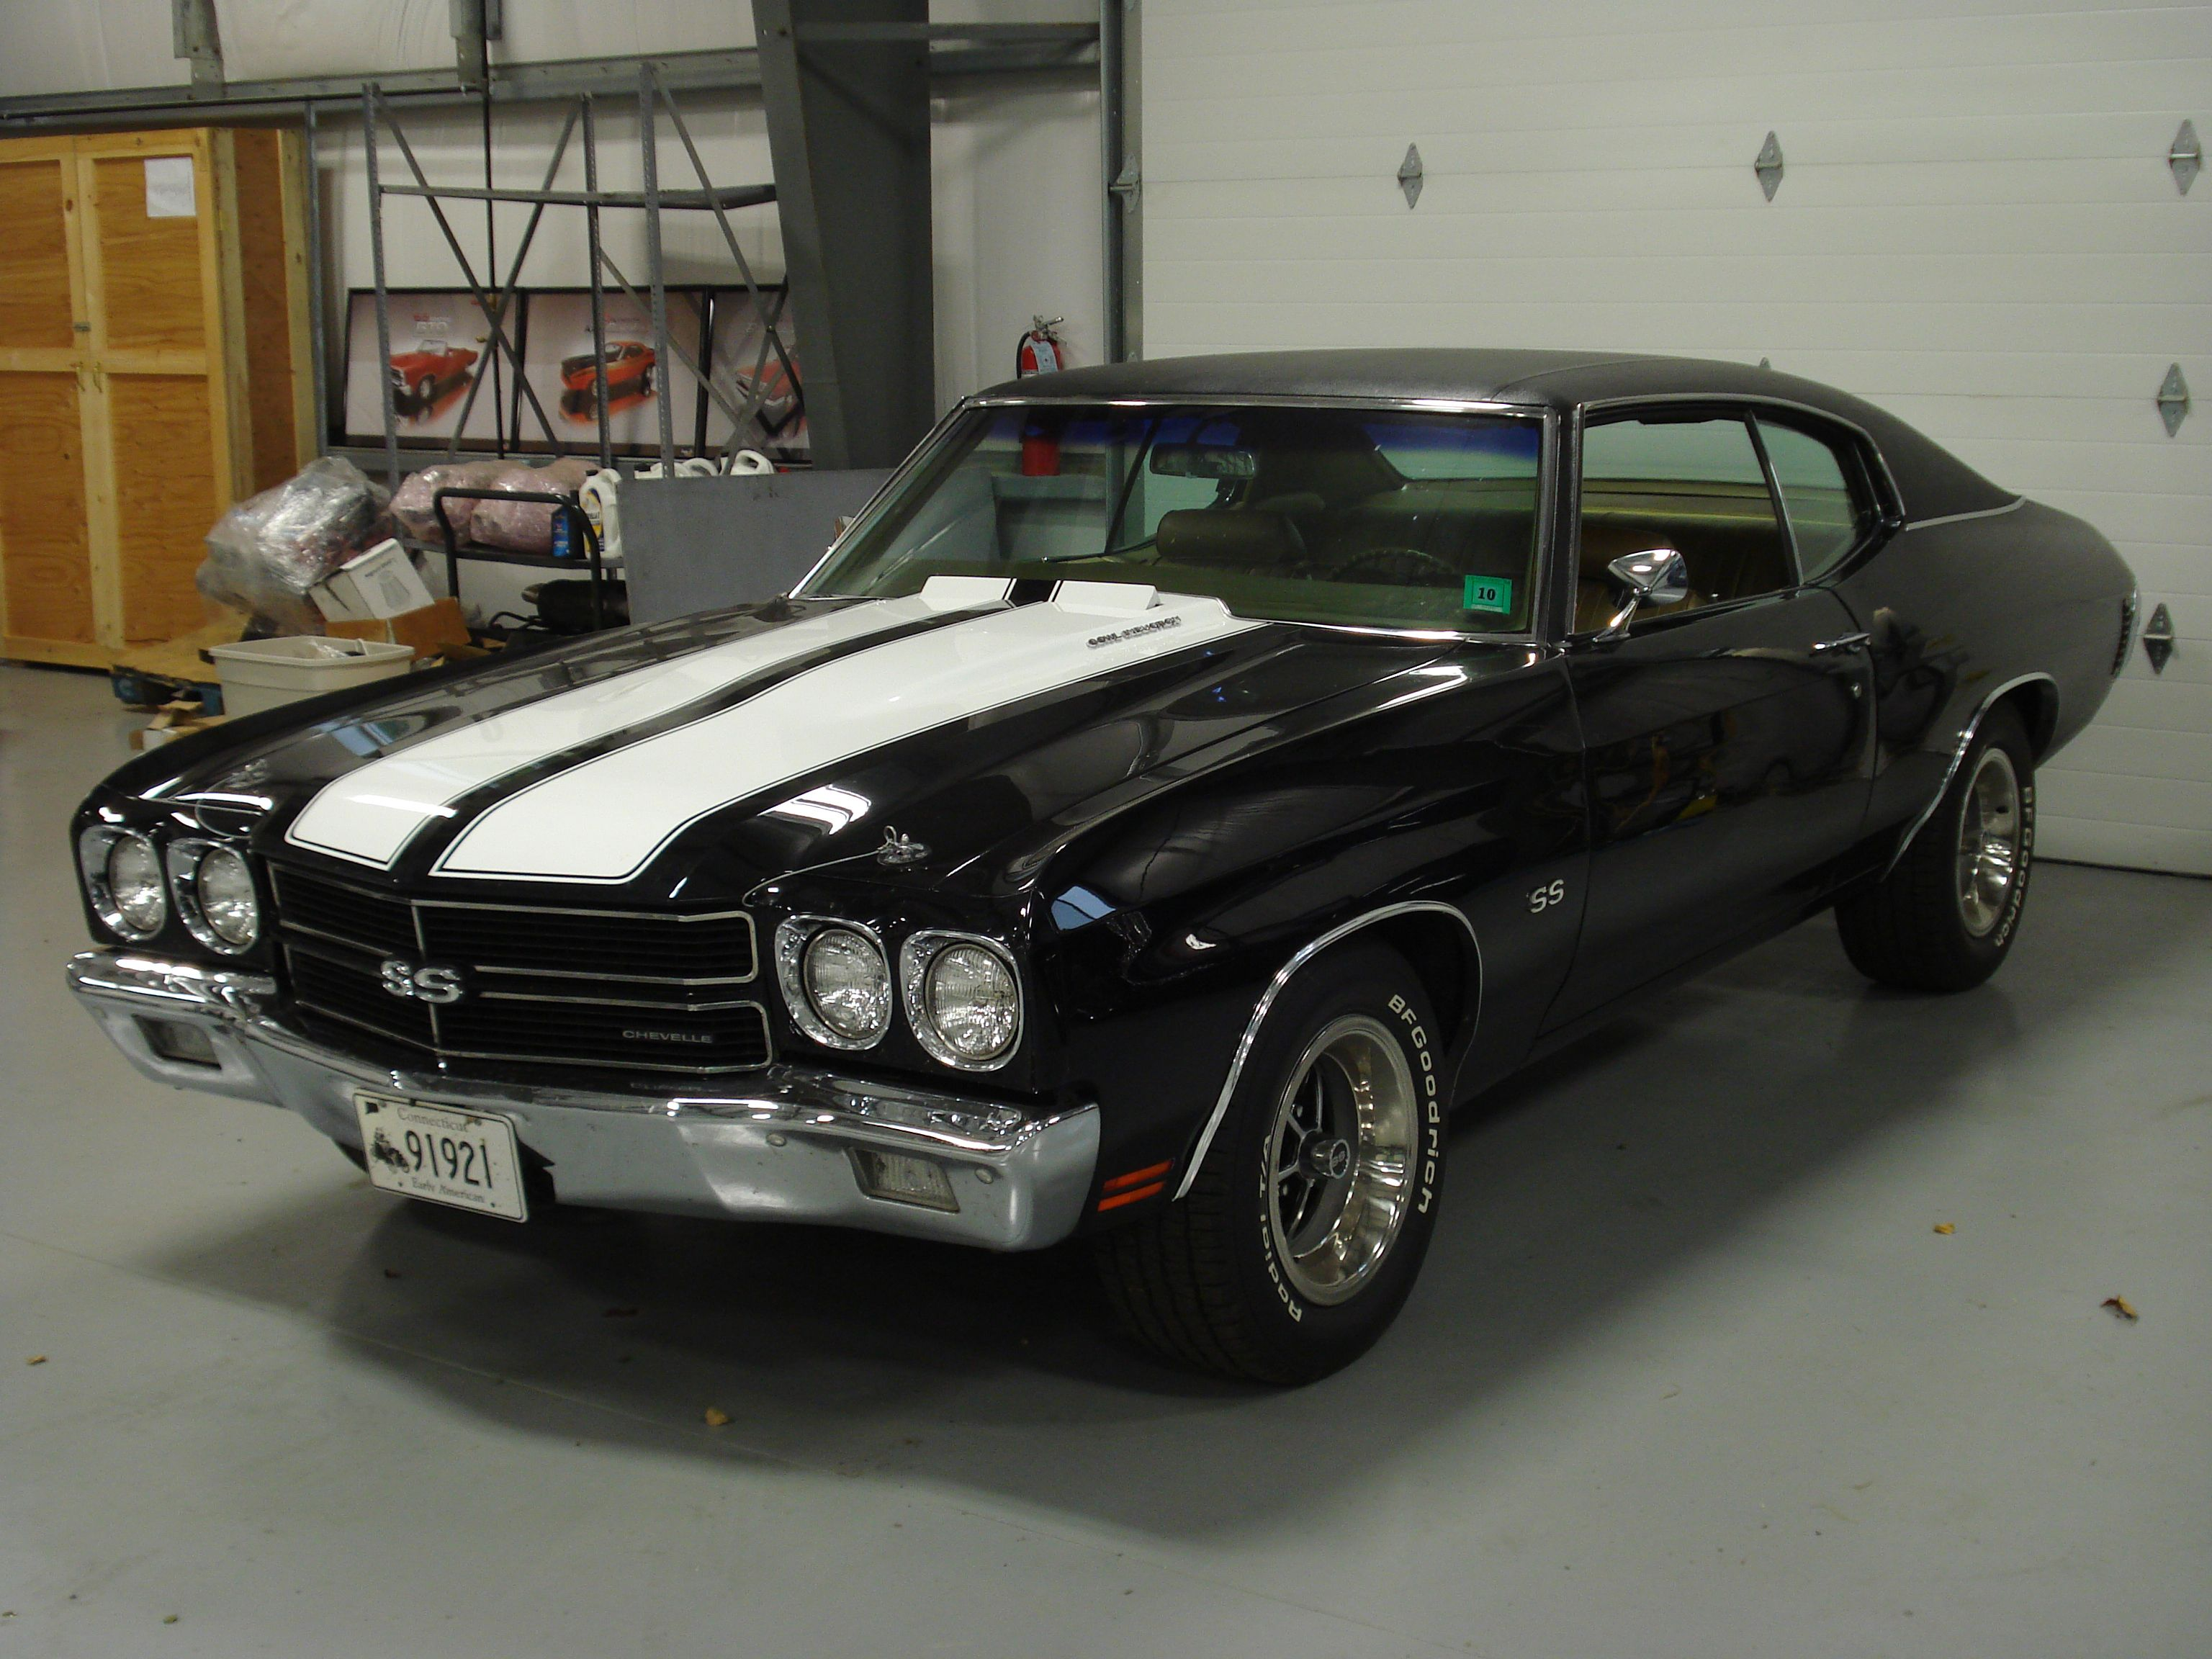 Chevy Chevelle Muscle Car Wallpapers Top Free Chevy